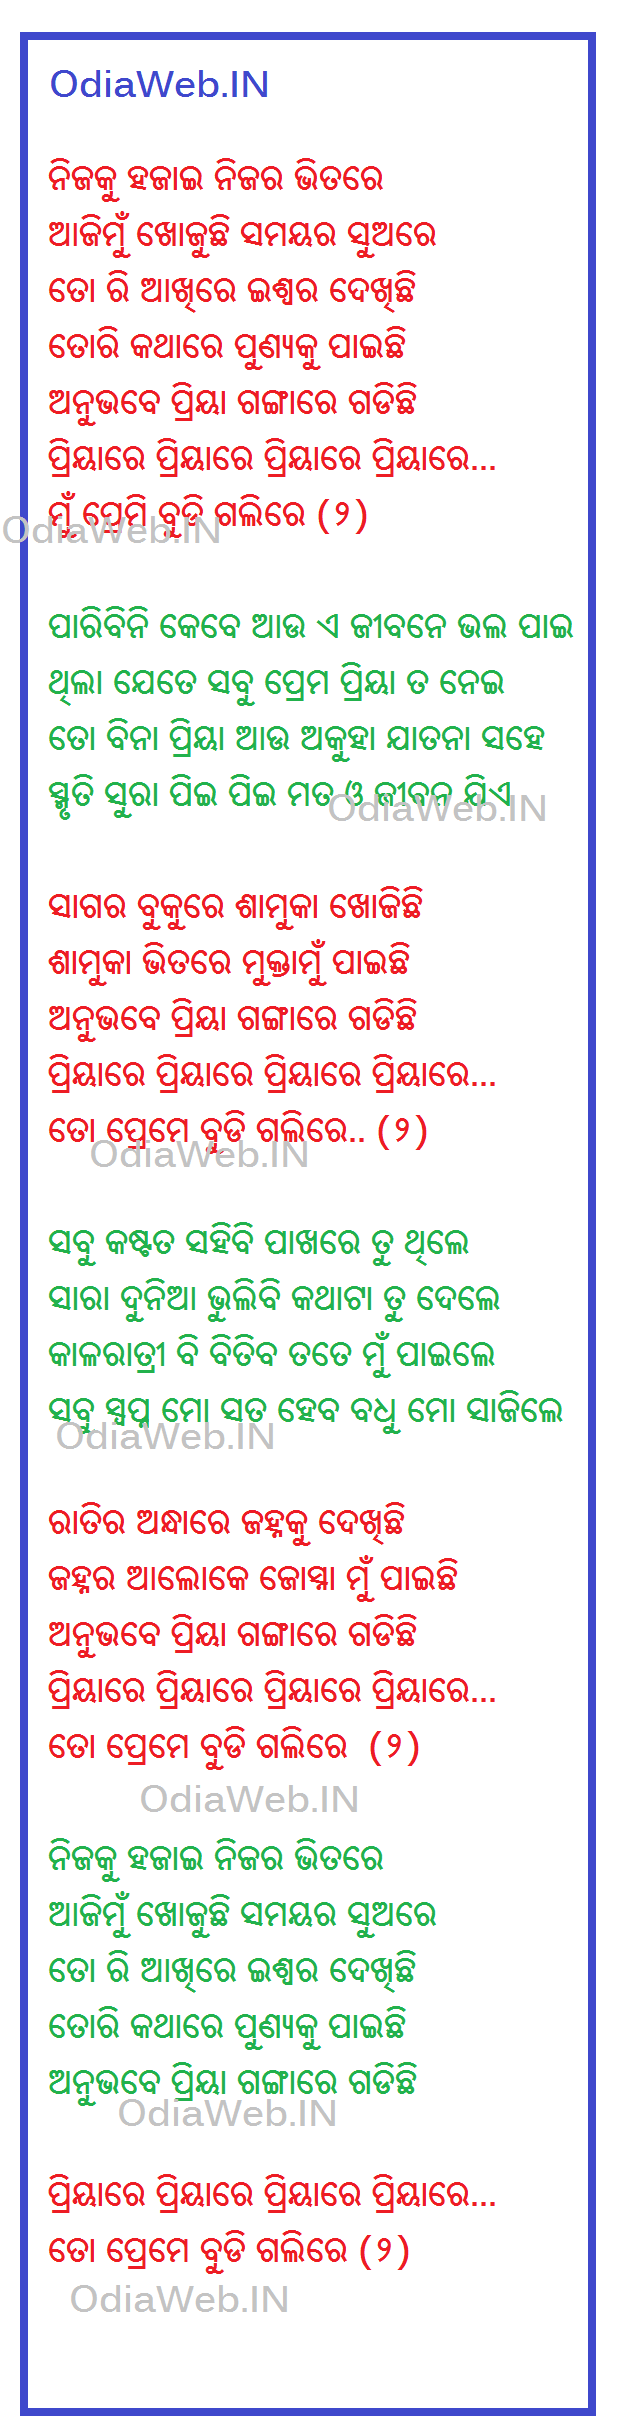 oriya essay ma Related post of mahatma gandhi essay in odia paper analysis of sonnet 116 essay essay describe a scene at a school canteen during recess jeu ultra mental explication essay dissertation ma significance problem tel polusyon sa hangin essay rated 42 /5 based on 6121 customer reviews share post: about post author leave a reply.